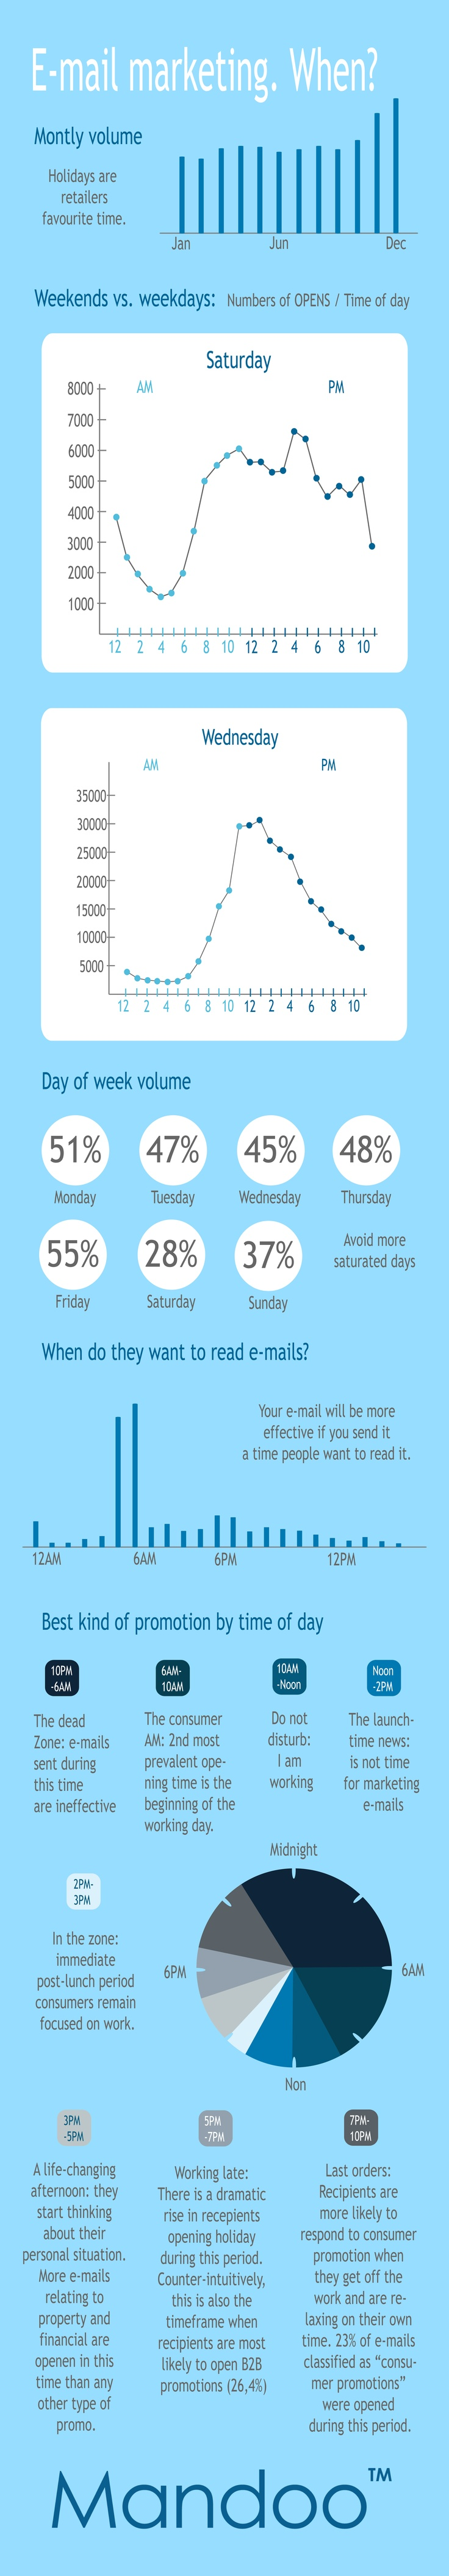 Email marketing. When?